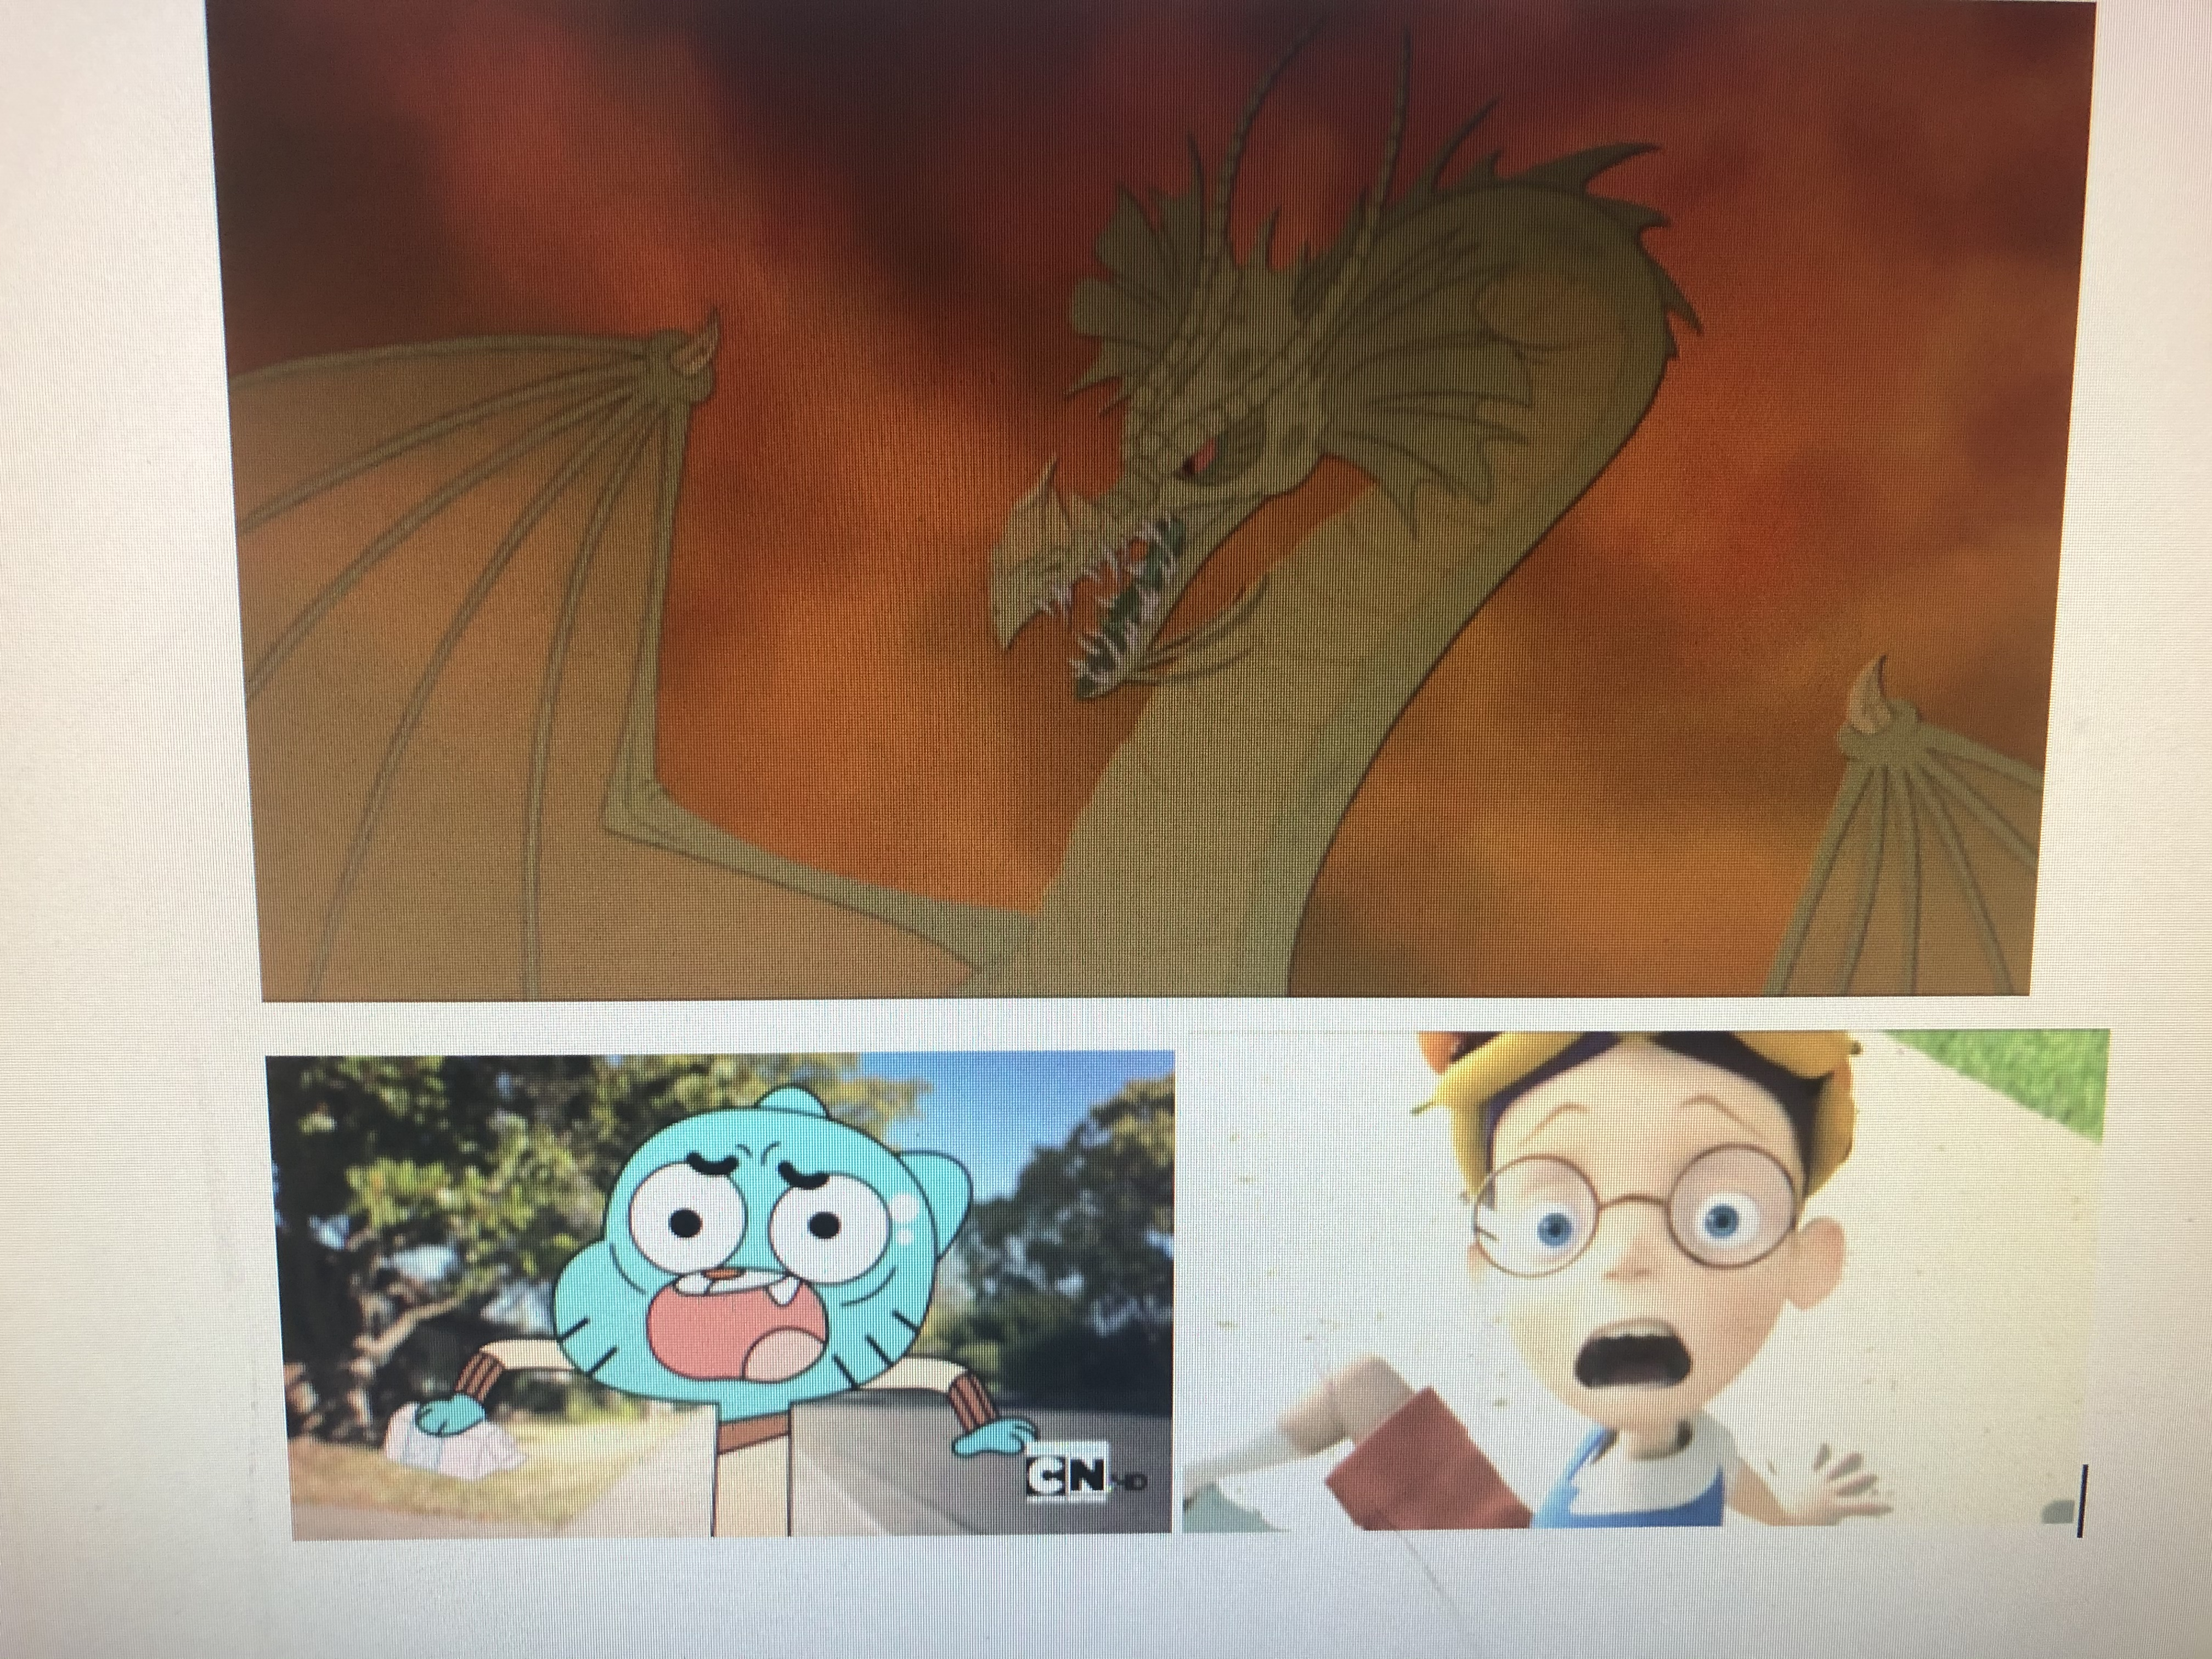 Lewis Robinson and Gumball Watterson Scared of The Dragon (The Pagemaster)